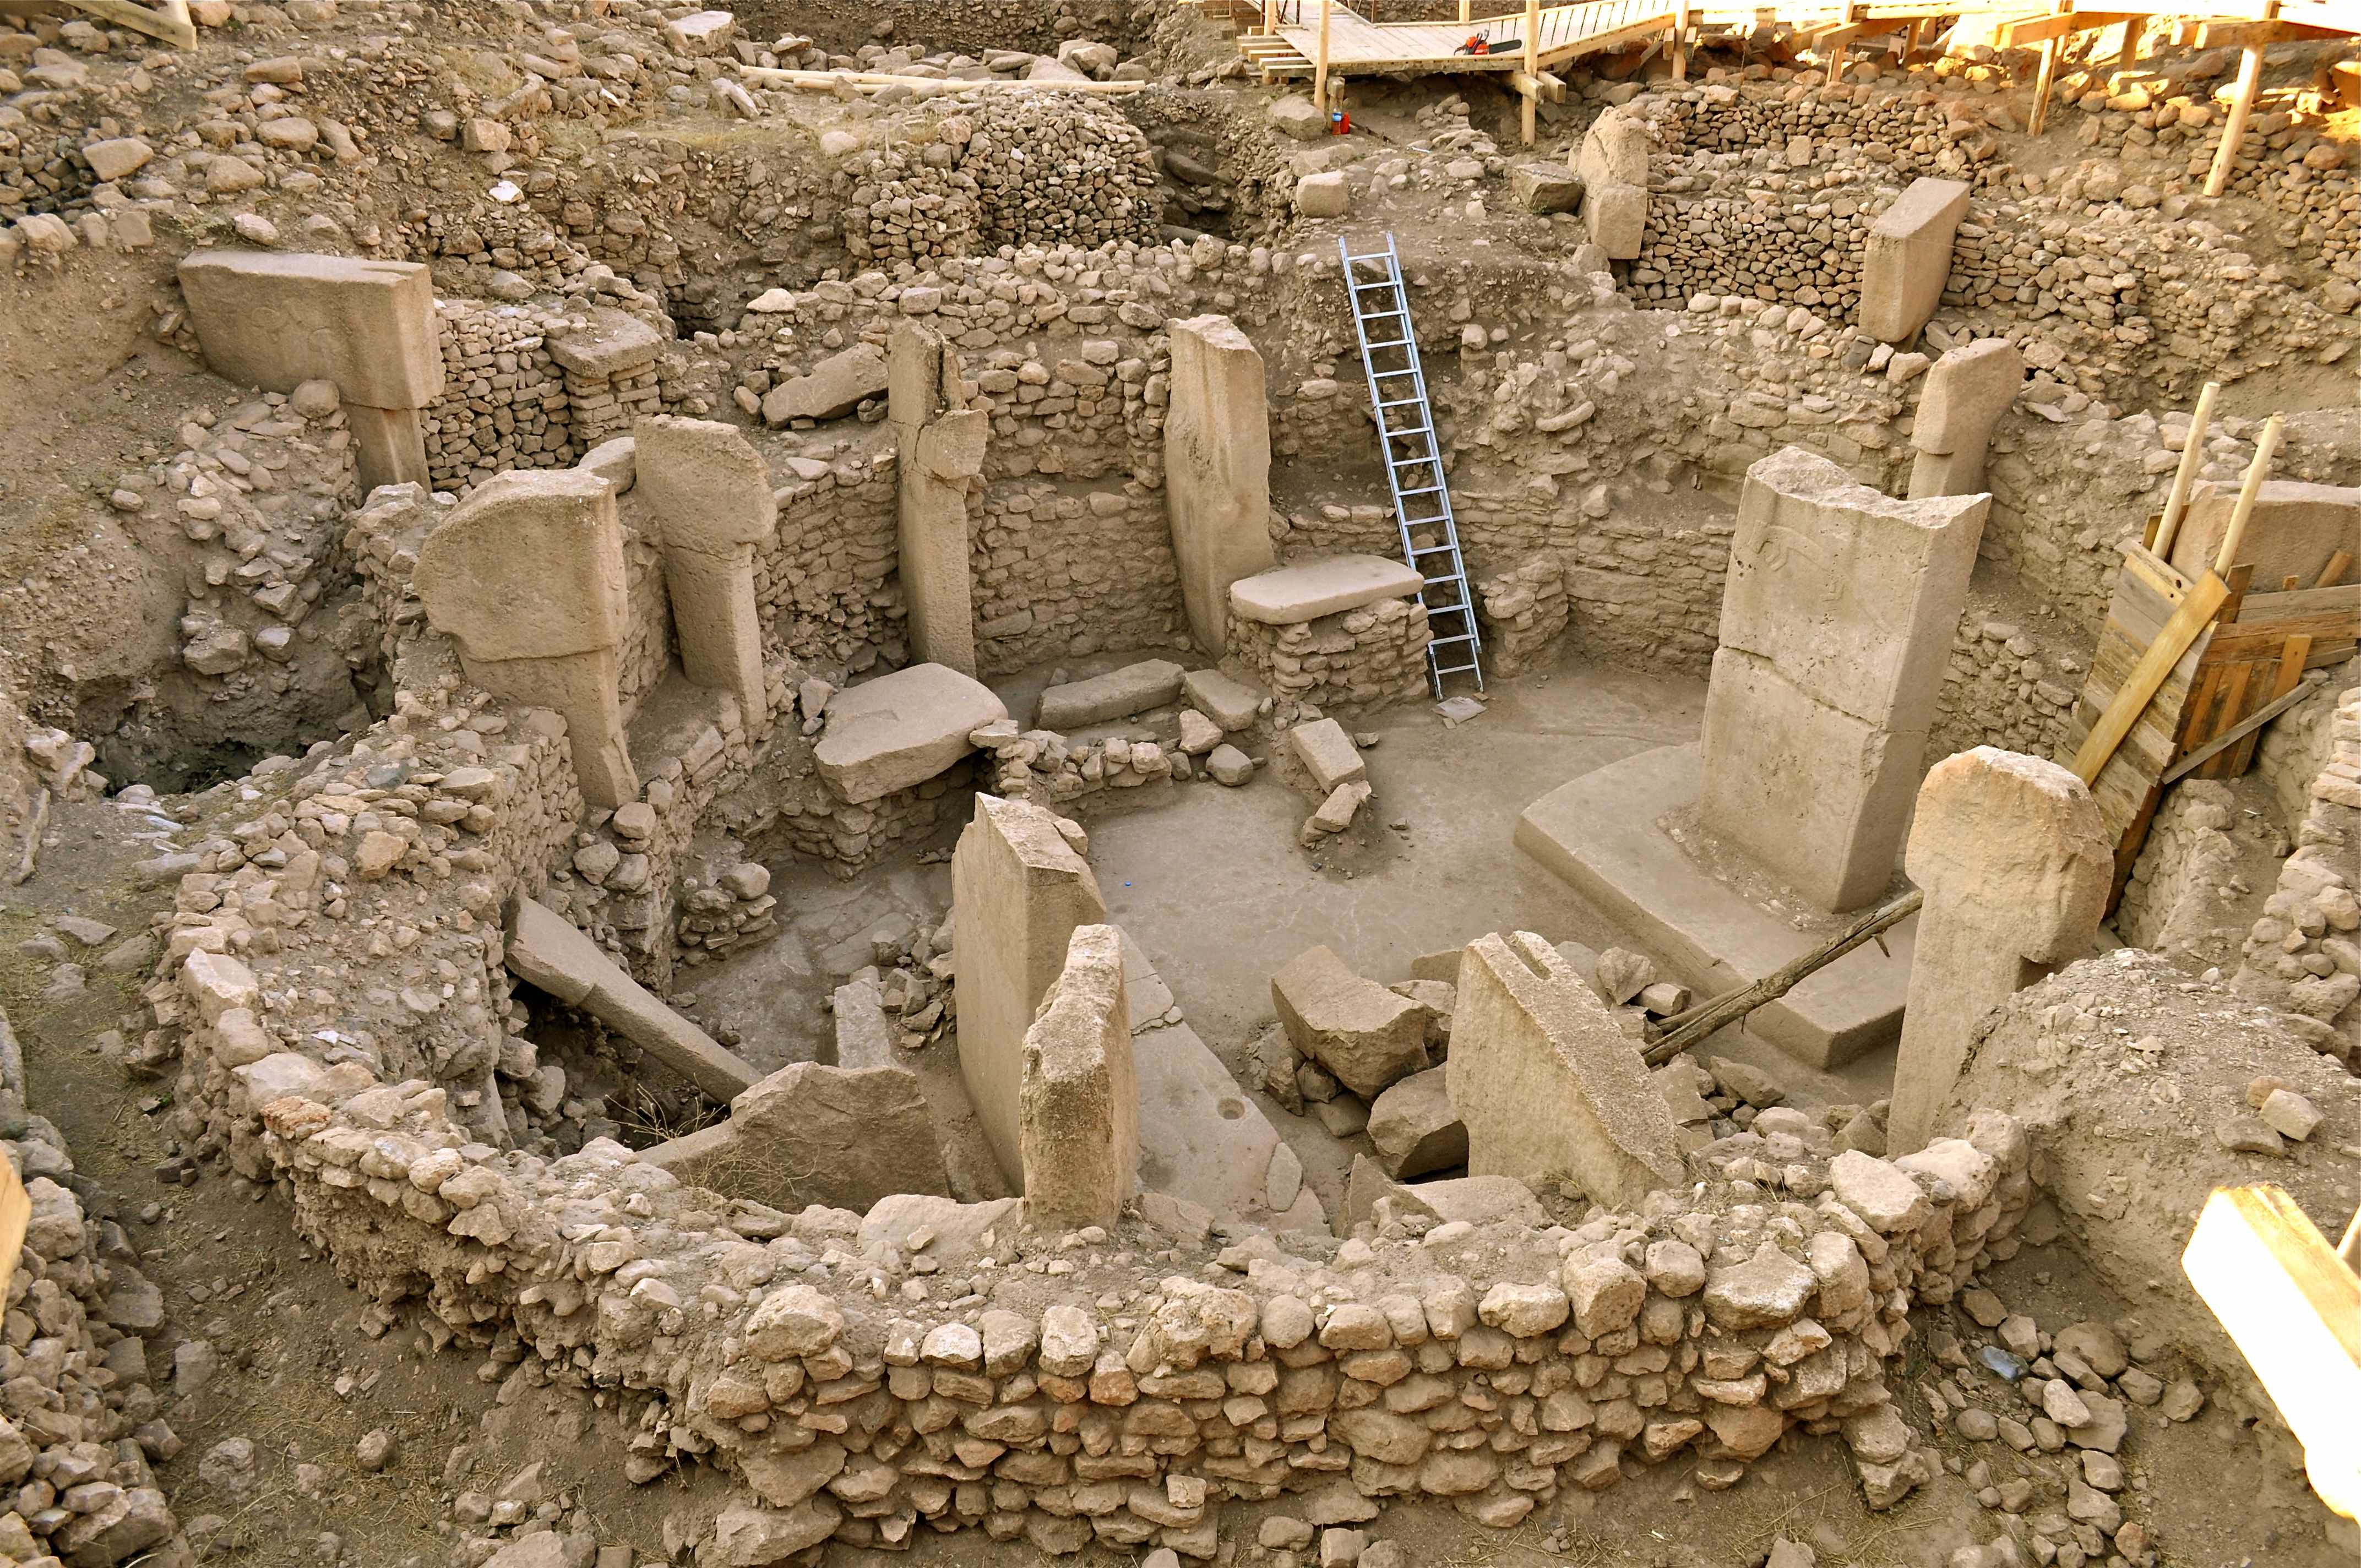 Göbekli Tepe excavation site